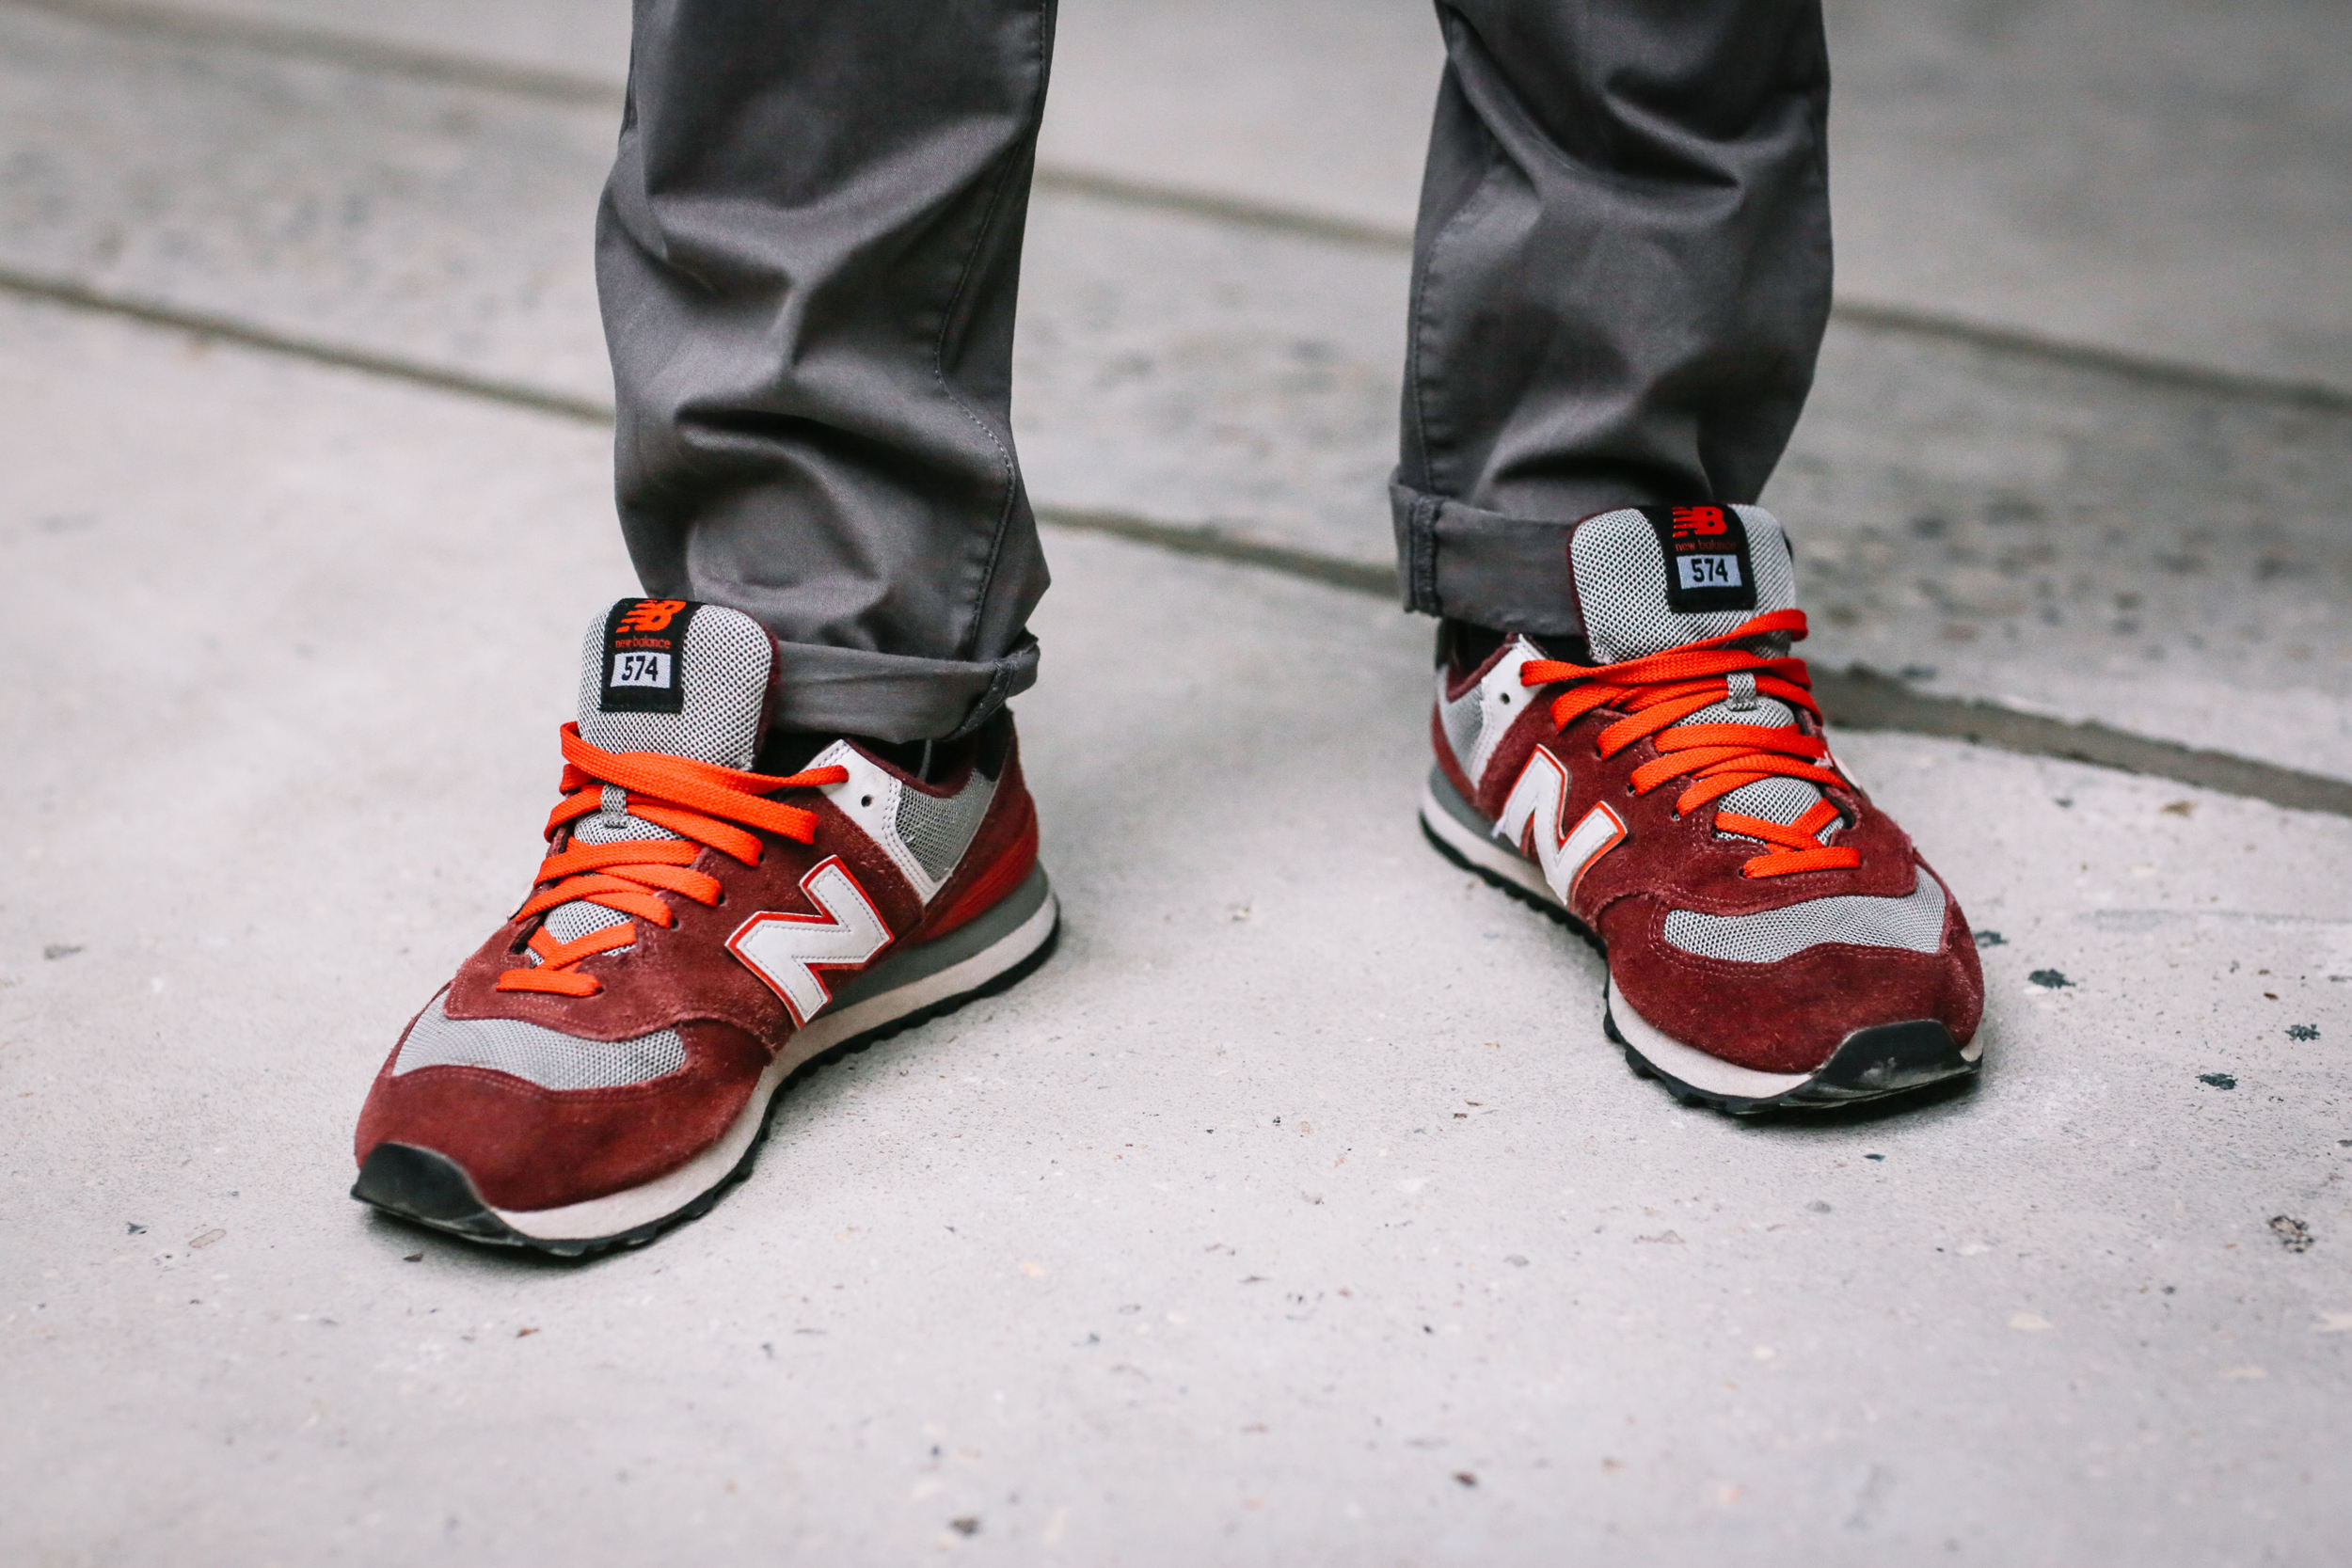 New Balance Rebukes White Supremacists for Adopting Its Sneakers ...